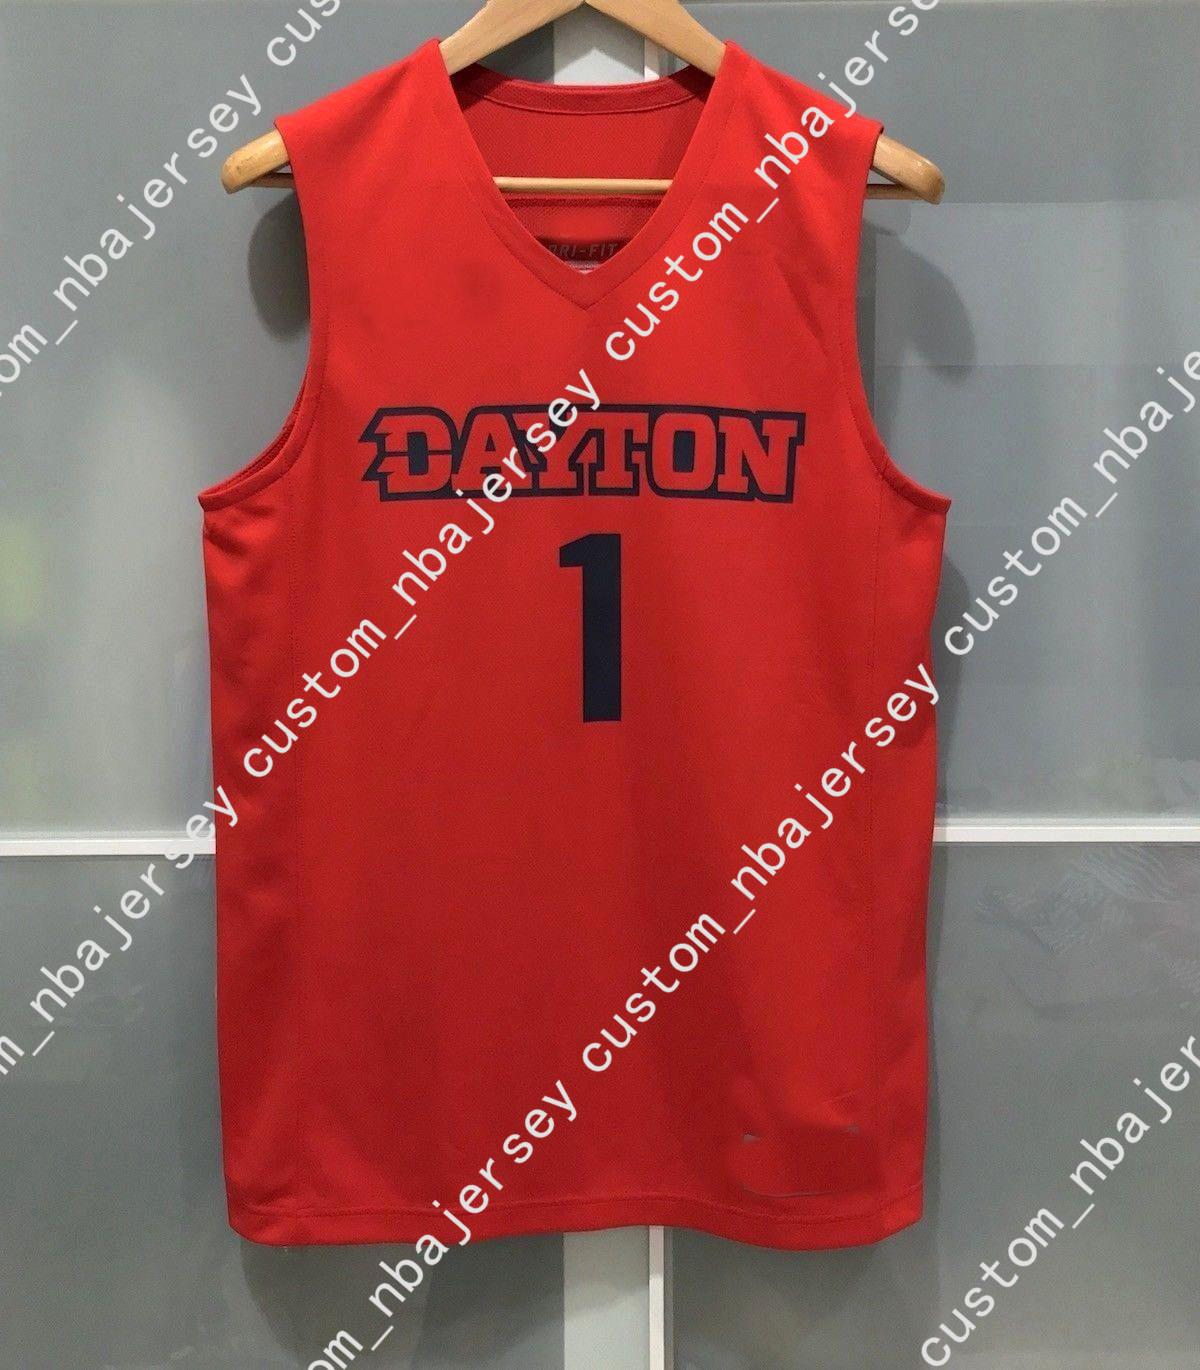 63aa2d36d 2019 Cheap Custom DAYTON FLYERS  1 NCAA MENS BASKETBALL JERSEY RED Stitched  Customize Any Number Name MEN WOMEN YOUTH XS 5XL From Custom nbajersey